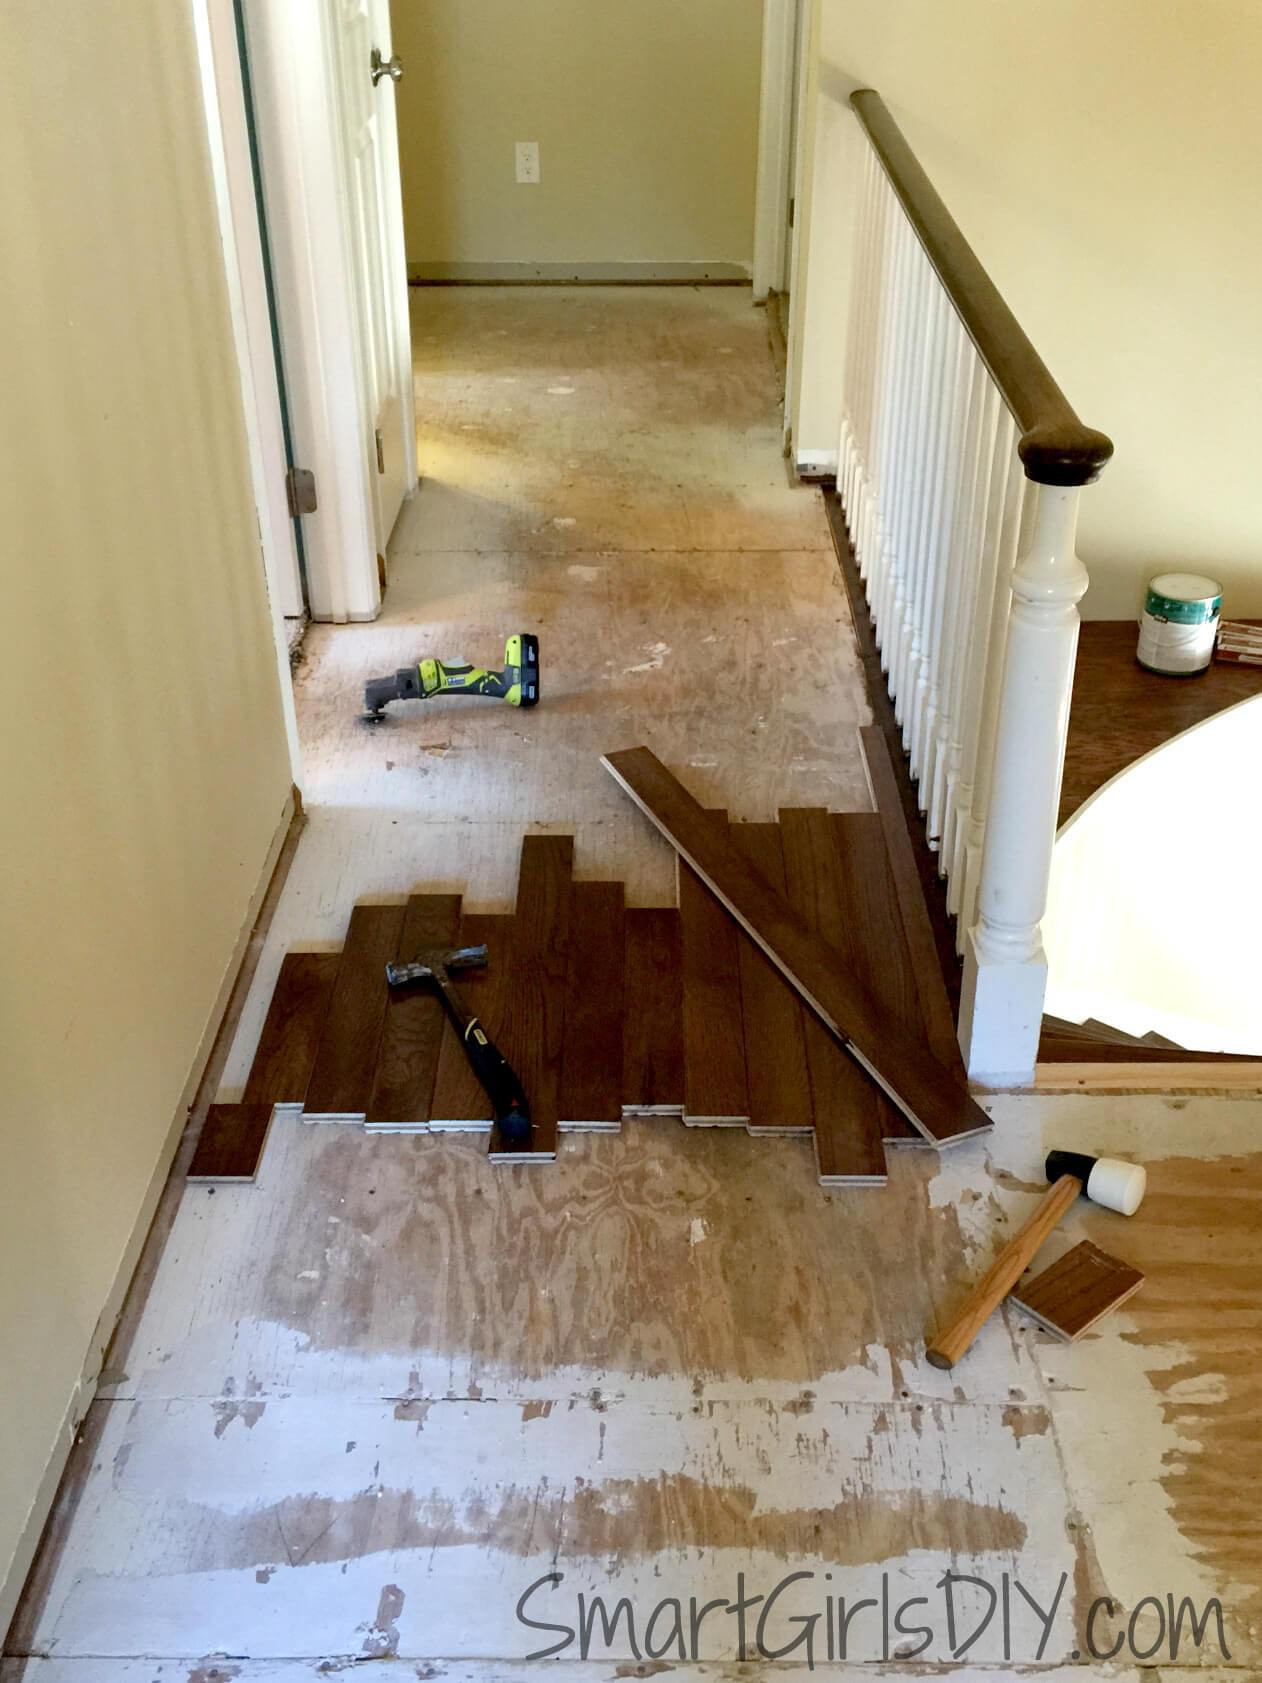 average cost to install hardwood flooring per square foot of upstairs hallway 1 installing hardwood floors with laying out bruce hardwood flooring first and second row of bruce hardwood being installed